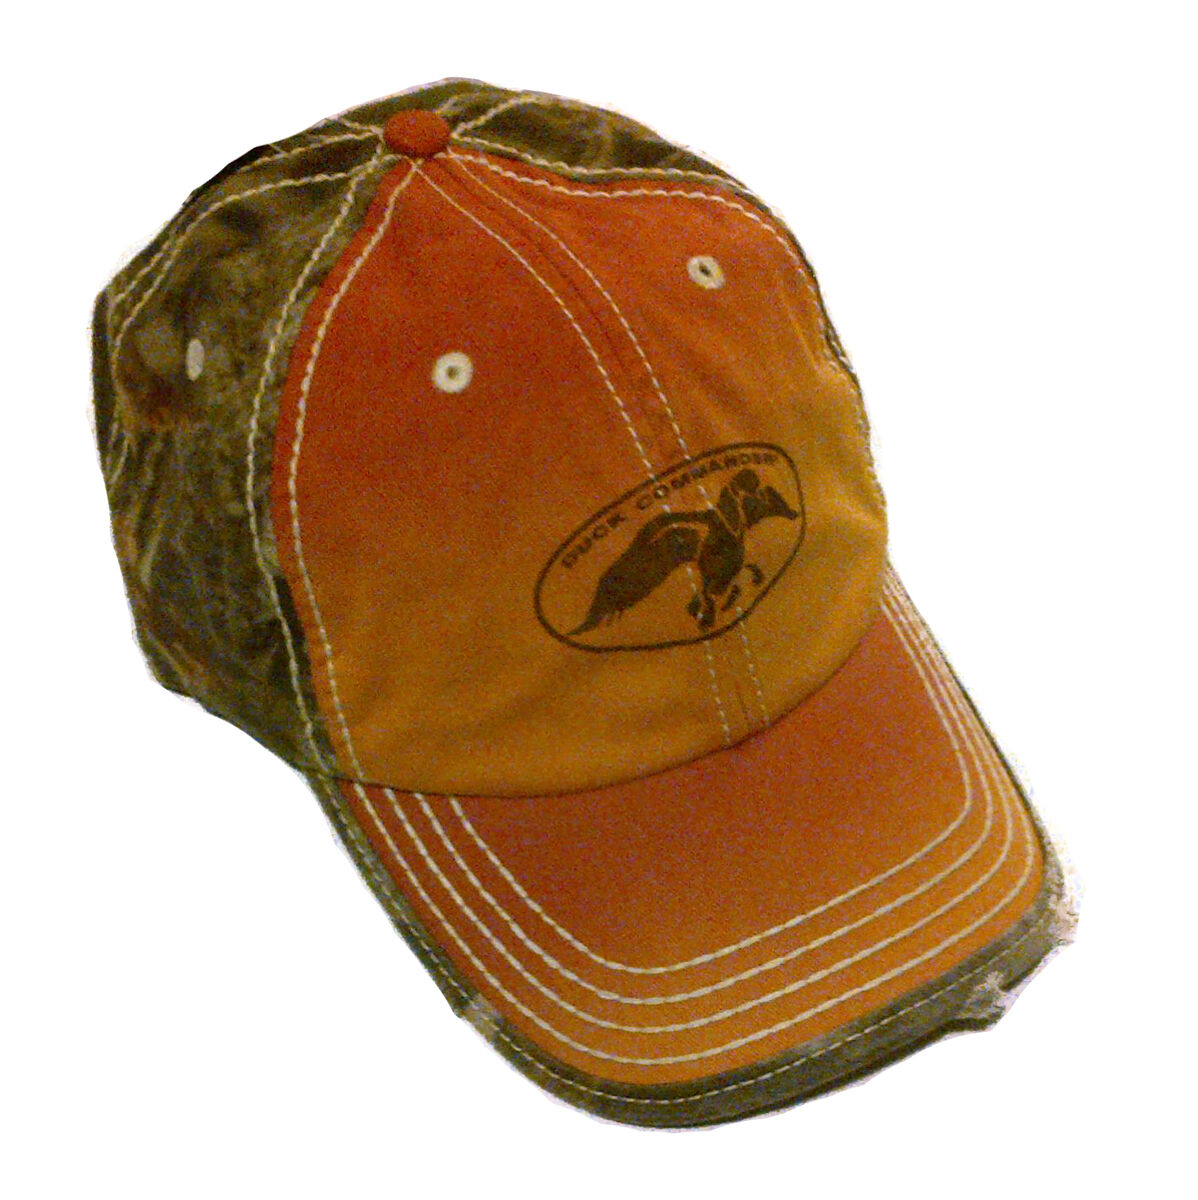 Duck Commander Orange Camo Baseball Cap Hat Duck Hunting Duck Dynasty 069046251ac4